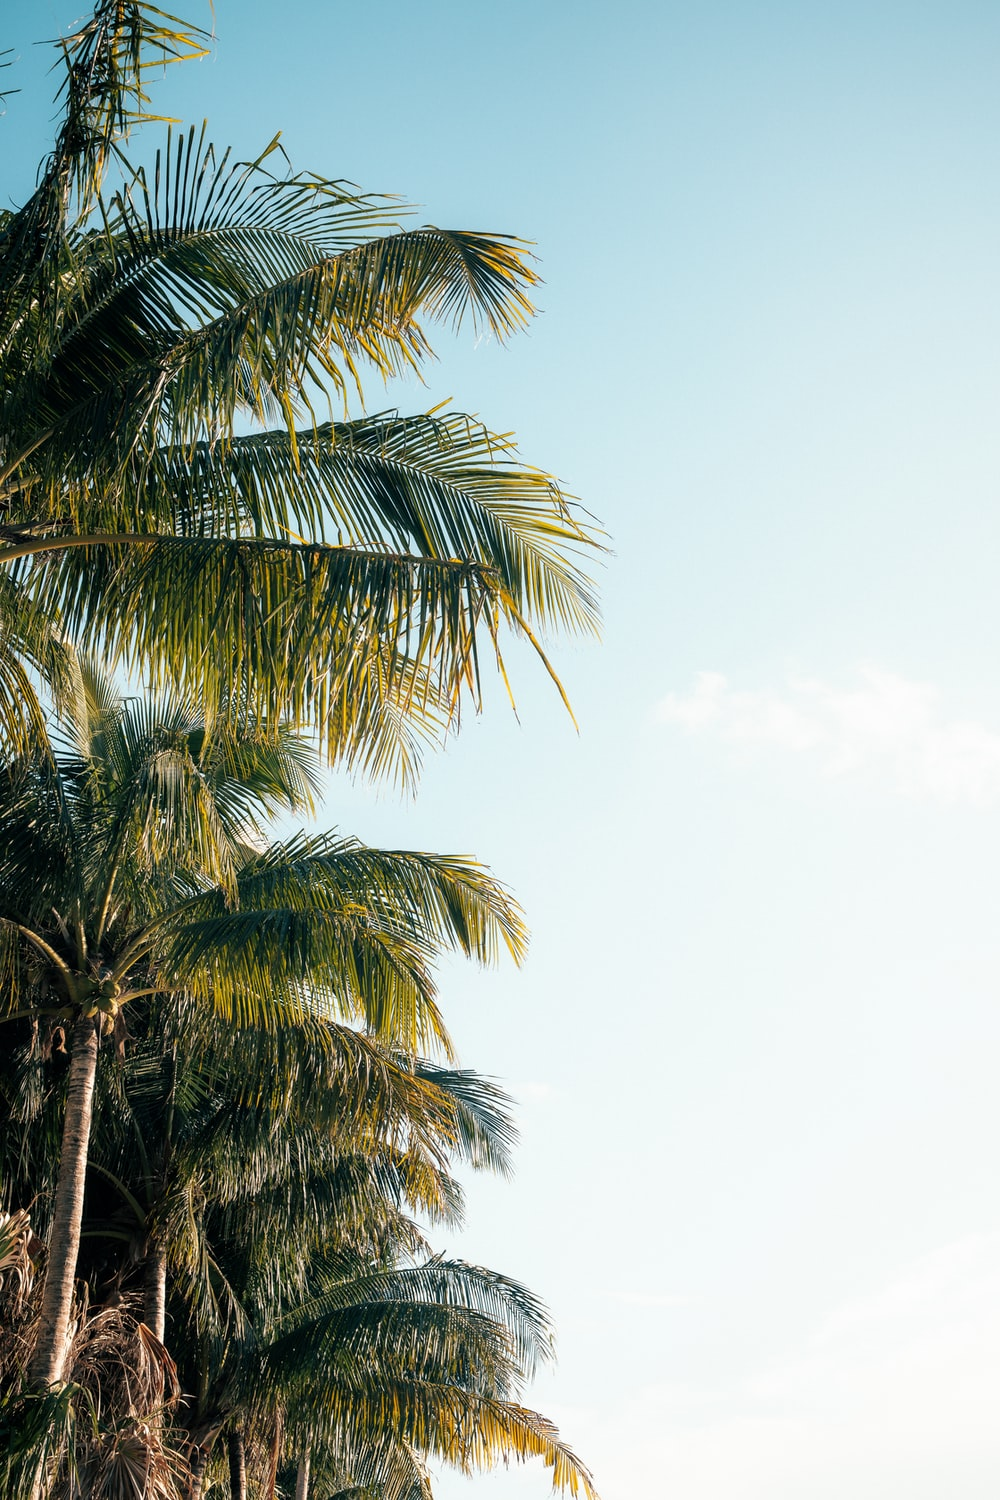 green palm tree under white sky during daytime